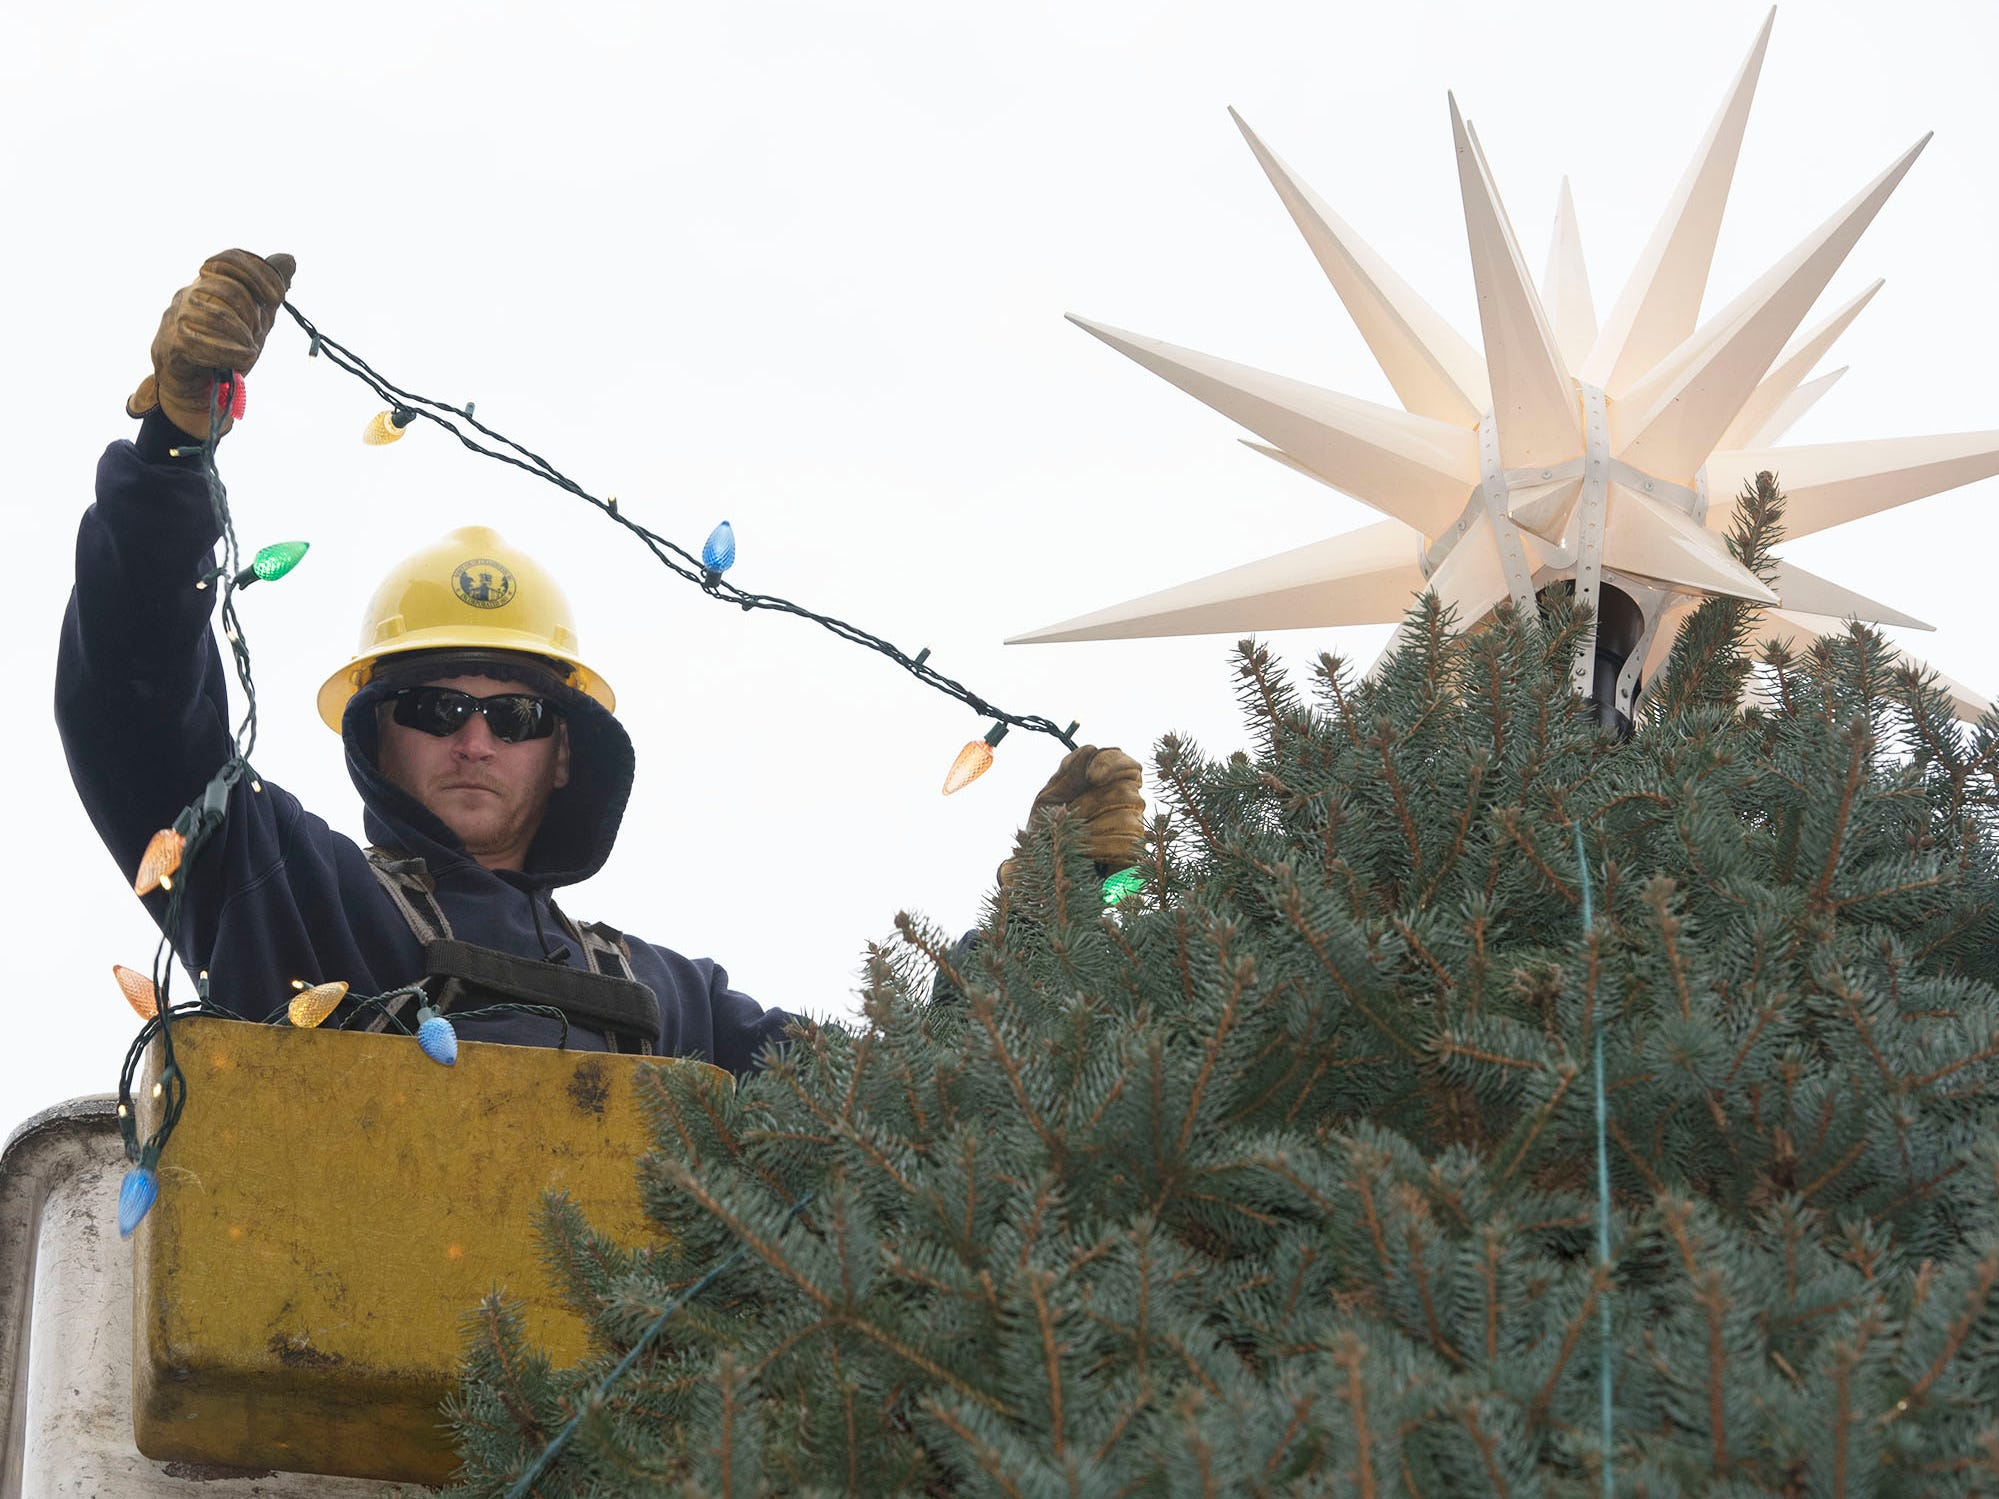 Borough of Chambersburg lineman Josh Swartz trims the Christmas tree at Memorial Square on Tuesday, November 13, 2018. This year's tree was donated by Darlene Fowler of Fayetteville.